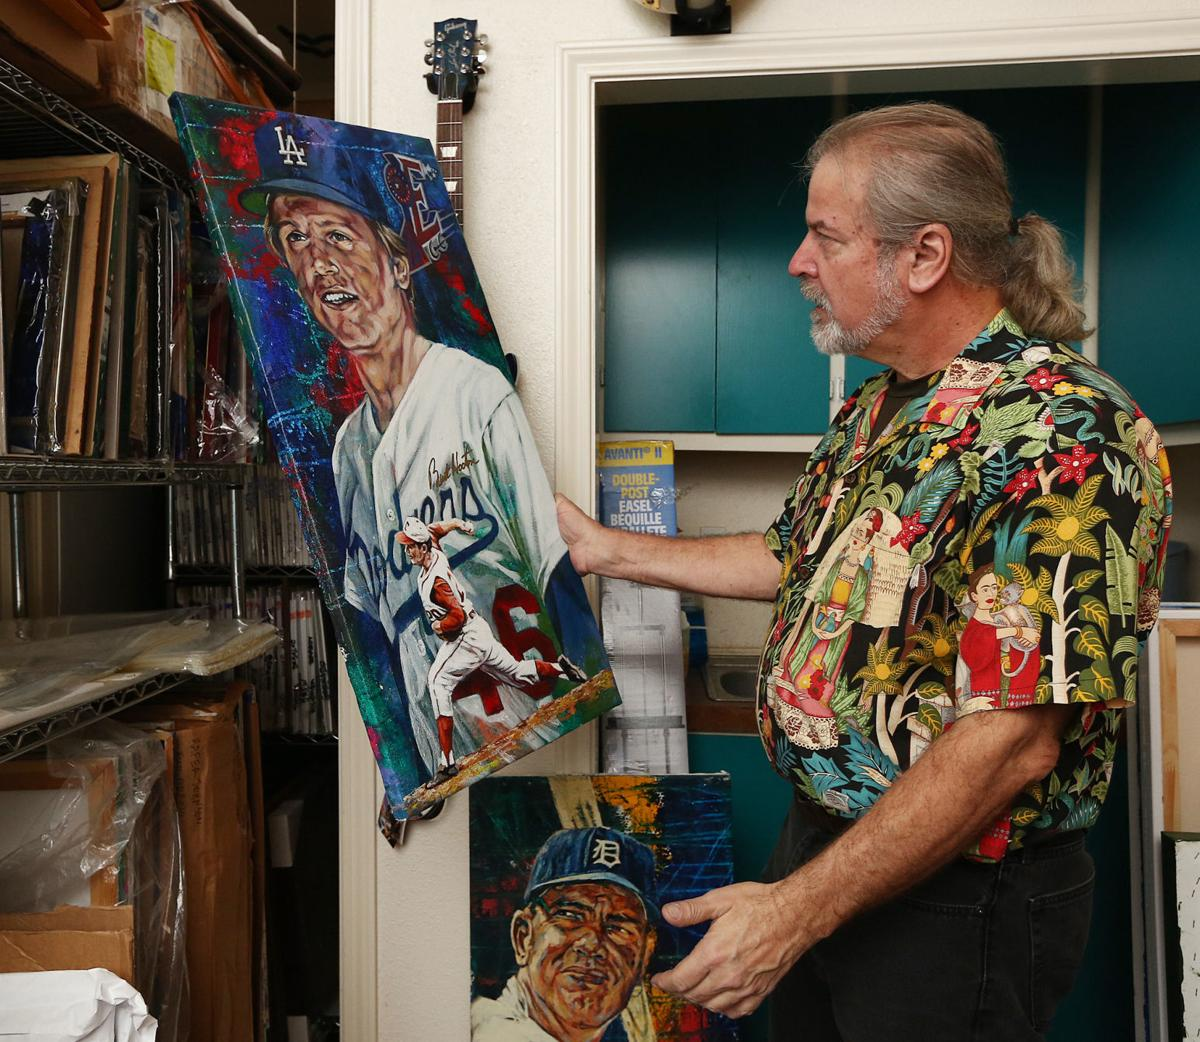 Texas Sports Hall of Fame artist